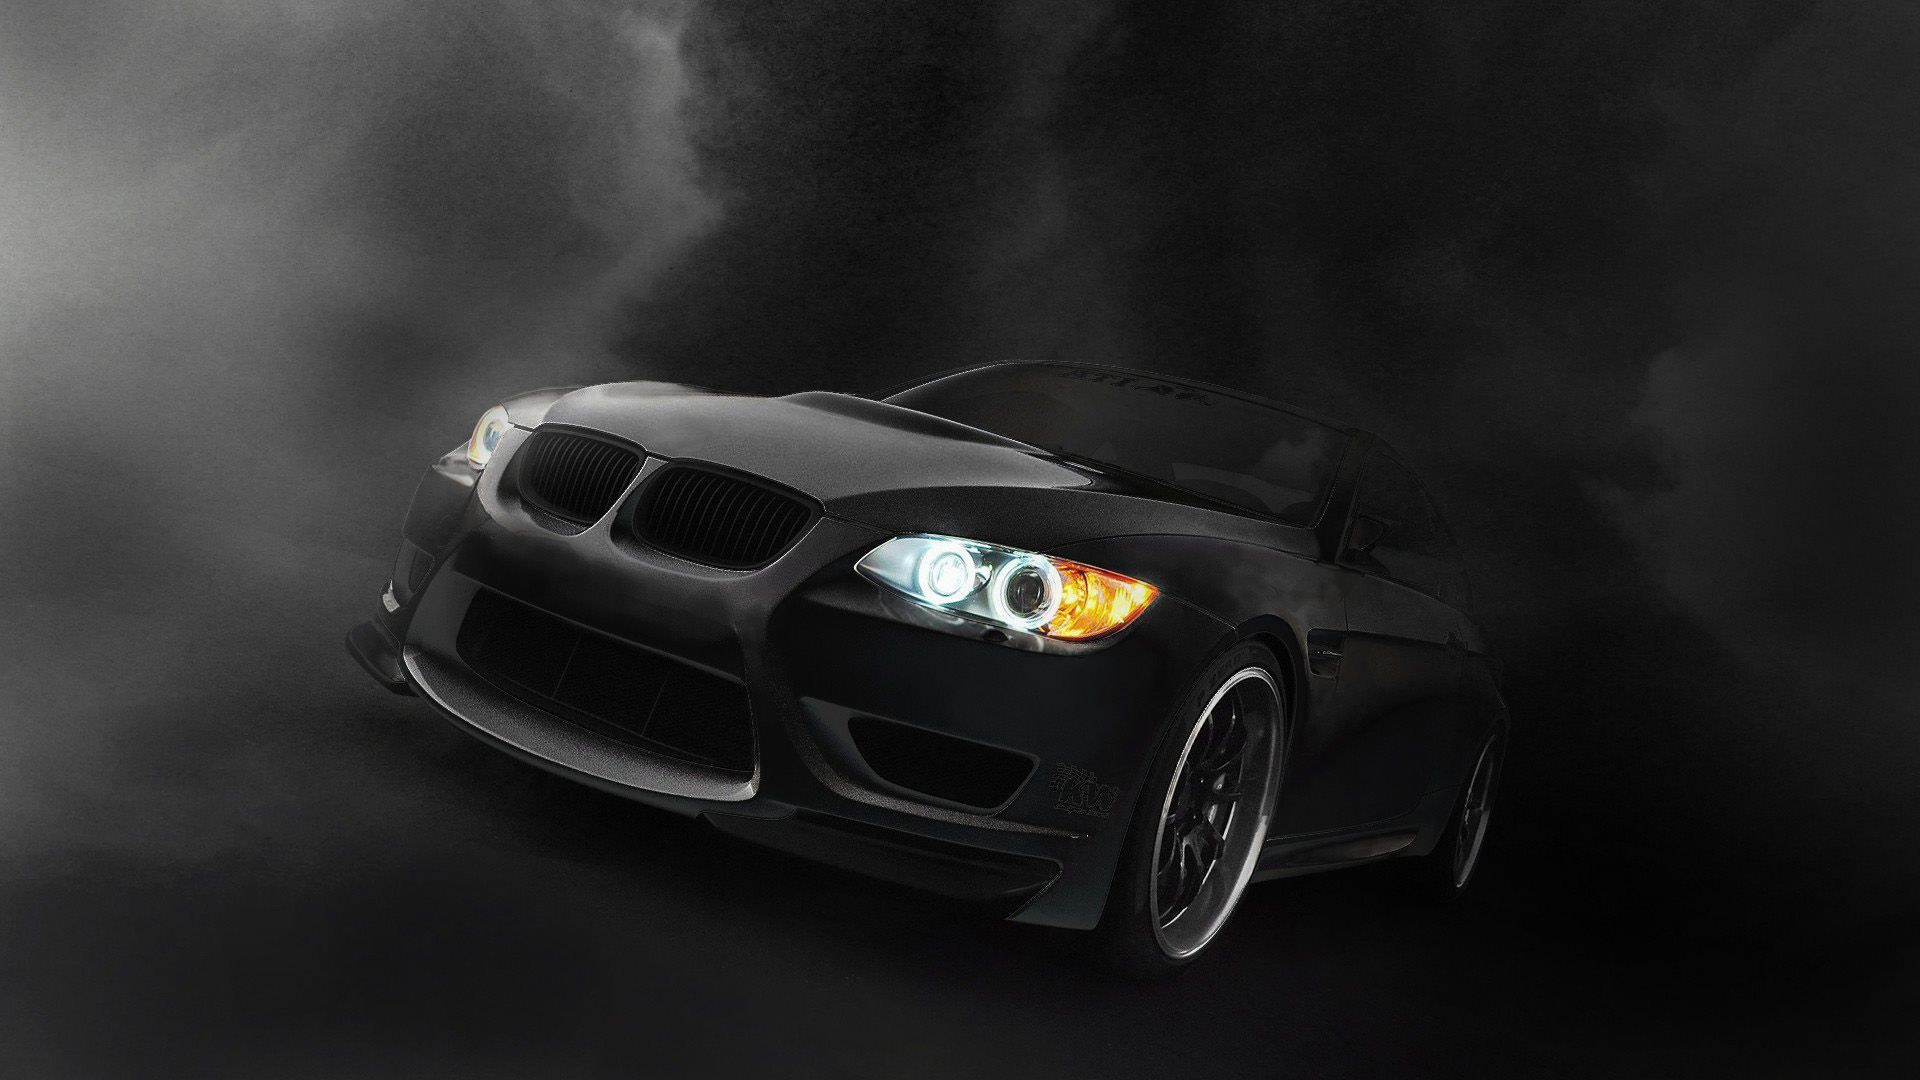 bmw wallpaper black wallpapers hd : cars wallpaper petsprin 1920